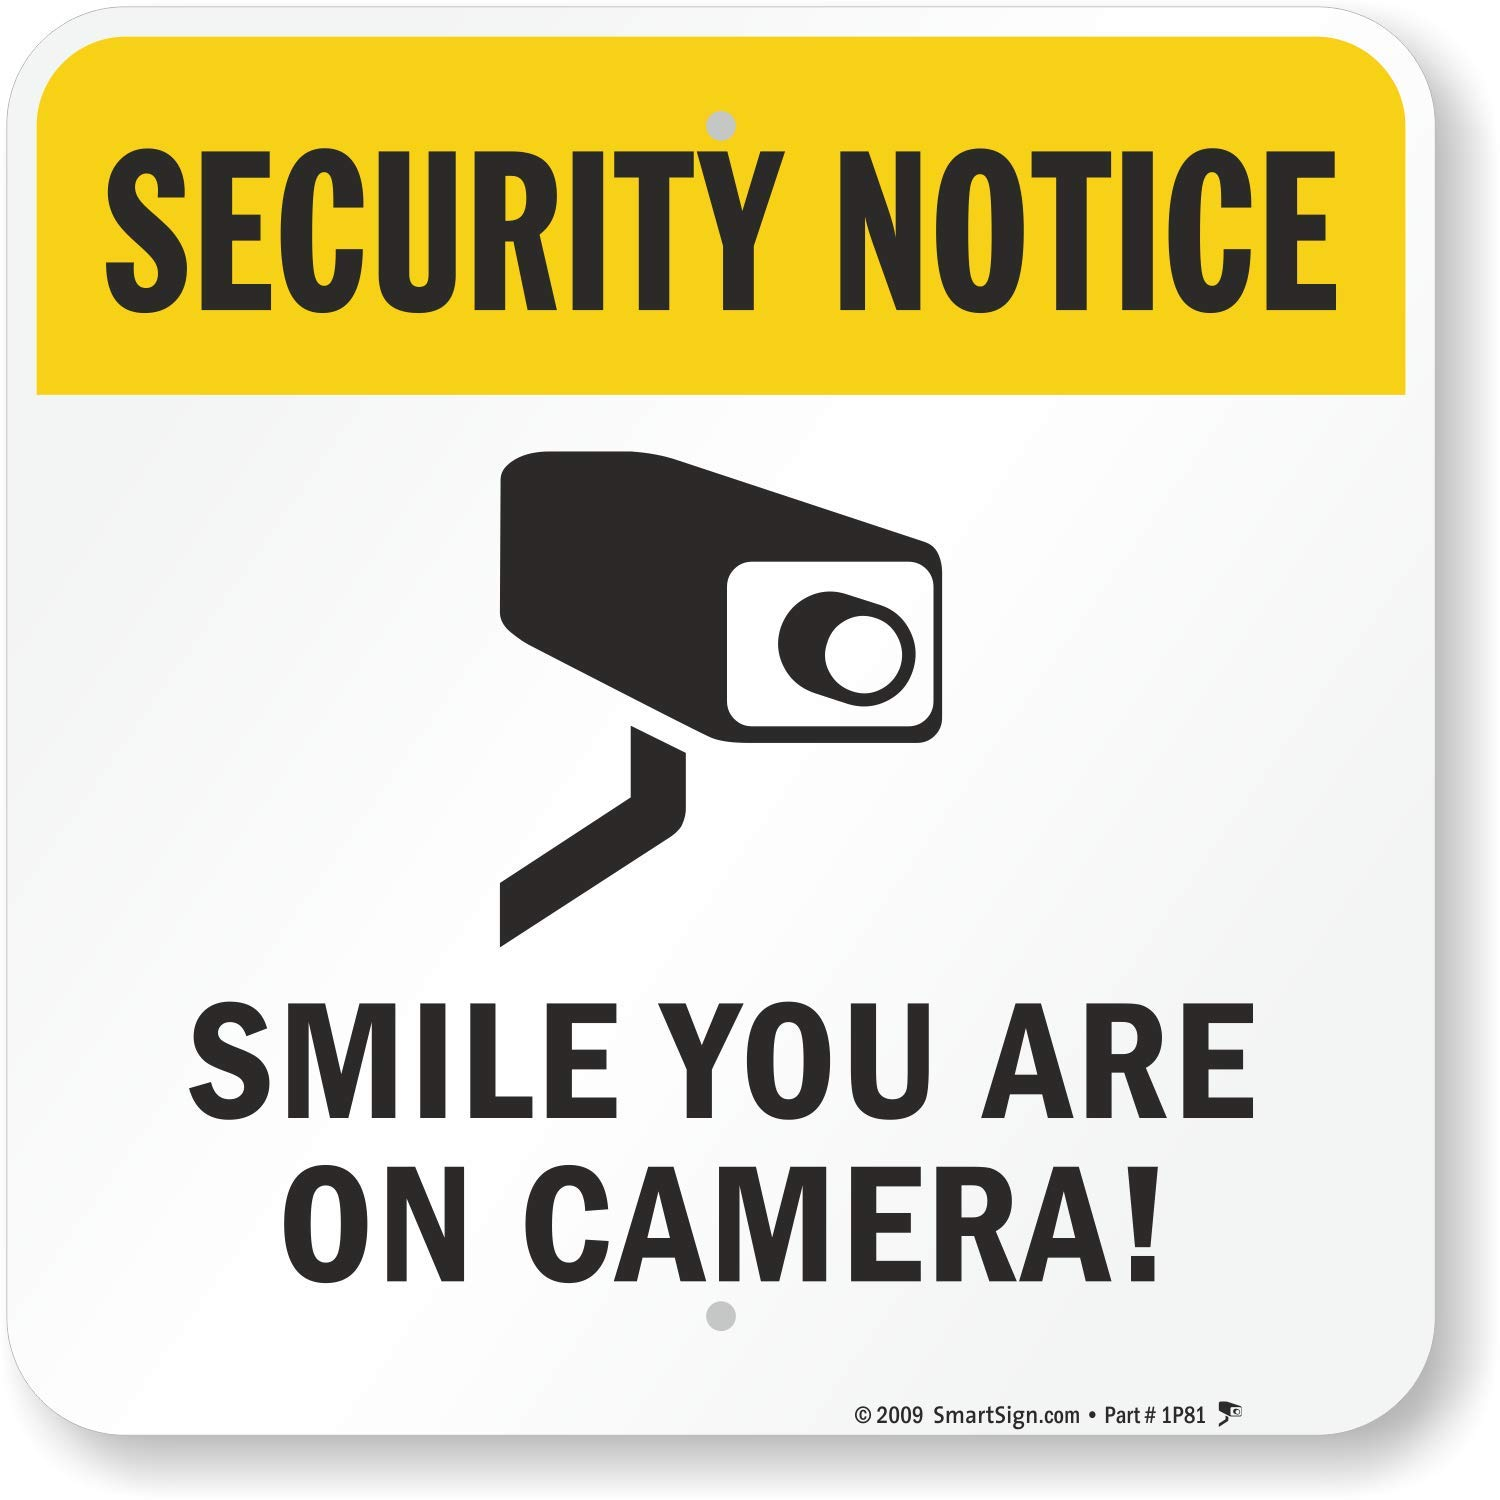 """SmartSign """"Security Notice - Smile You Are on Camera!"""" Sign   18"""" x 18"""" Aluminum"""